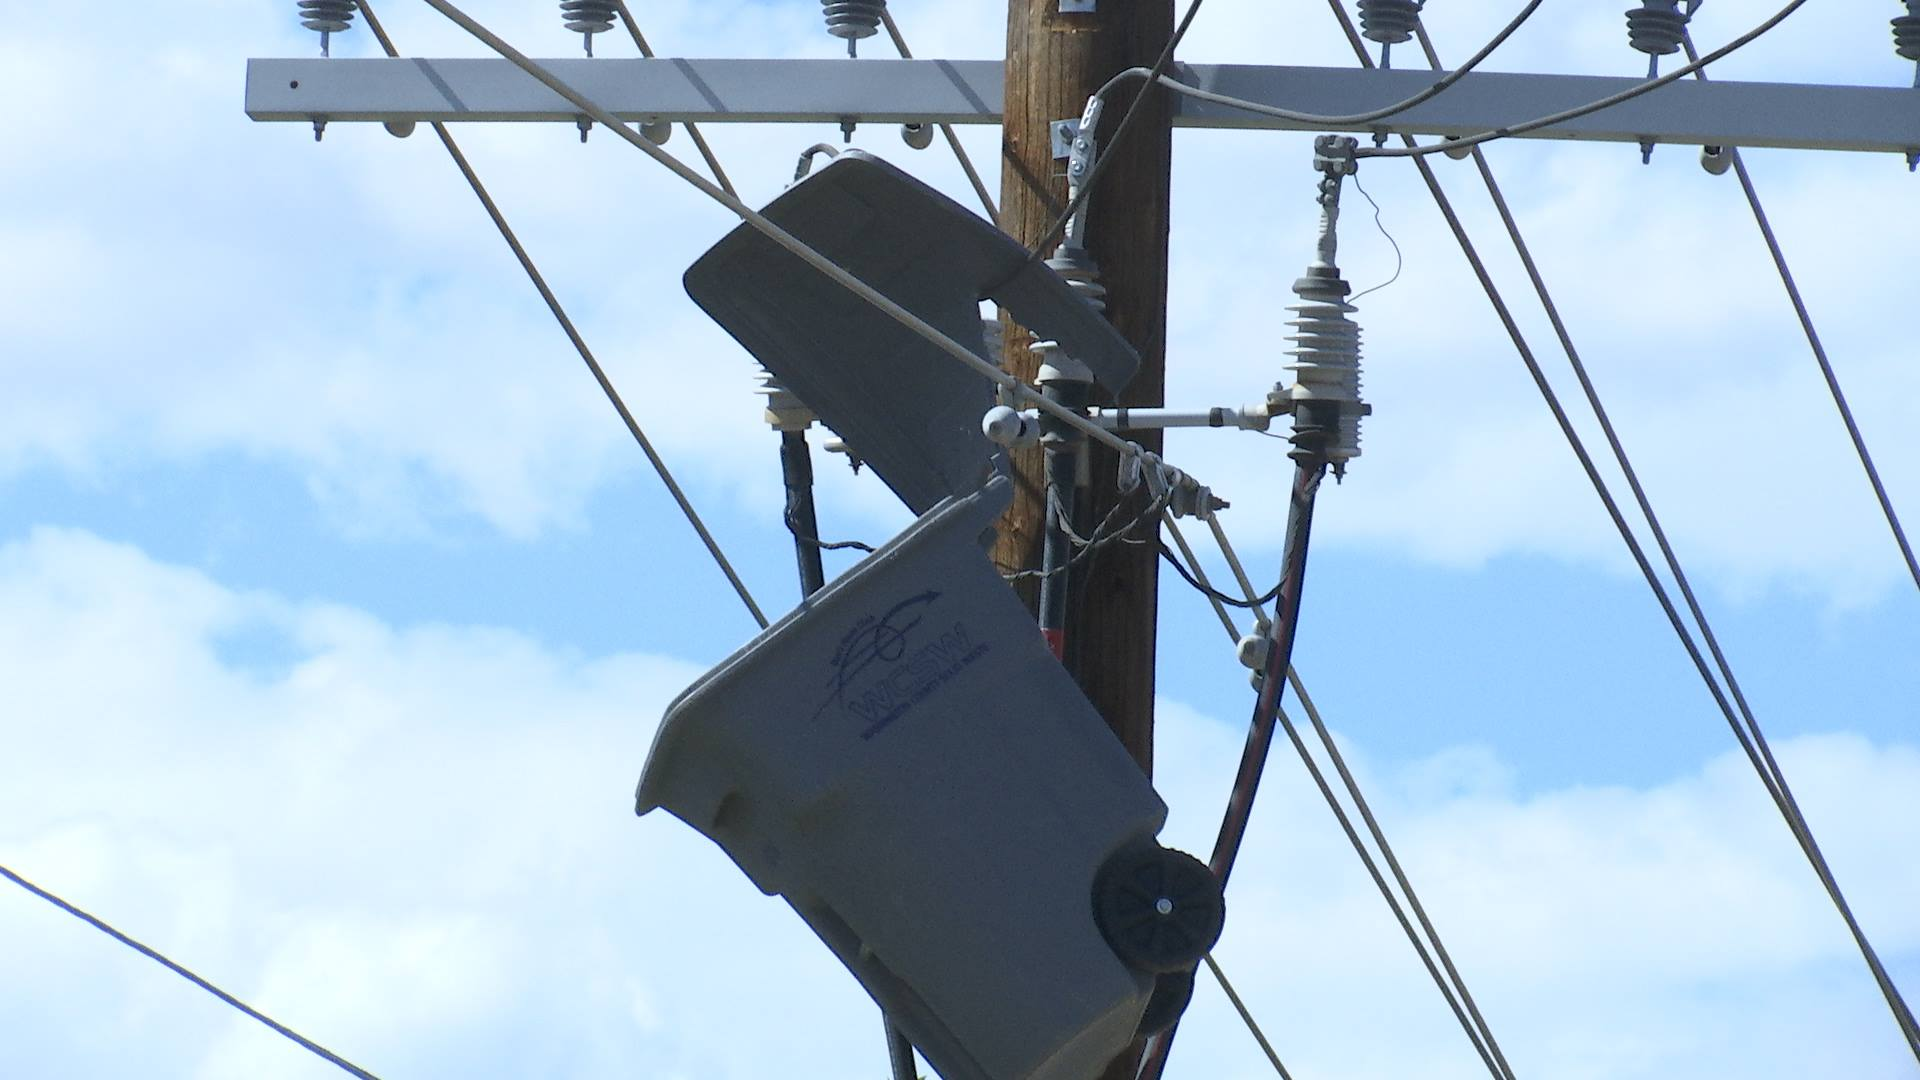 96 Gallon Trash Can Hangs In Power Lines After Heavy Winds St